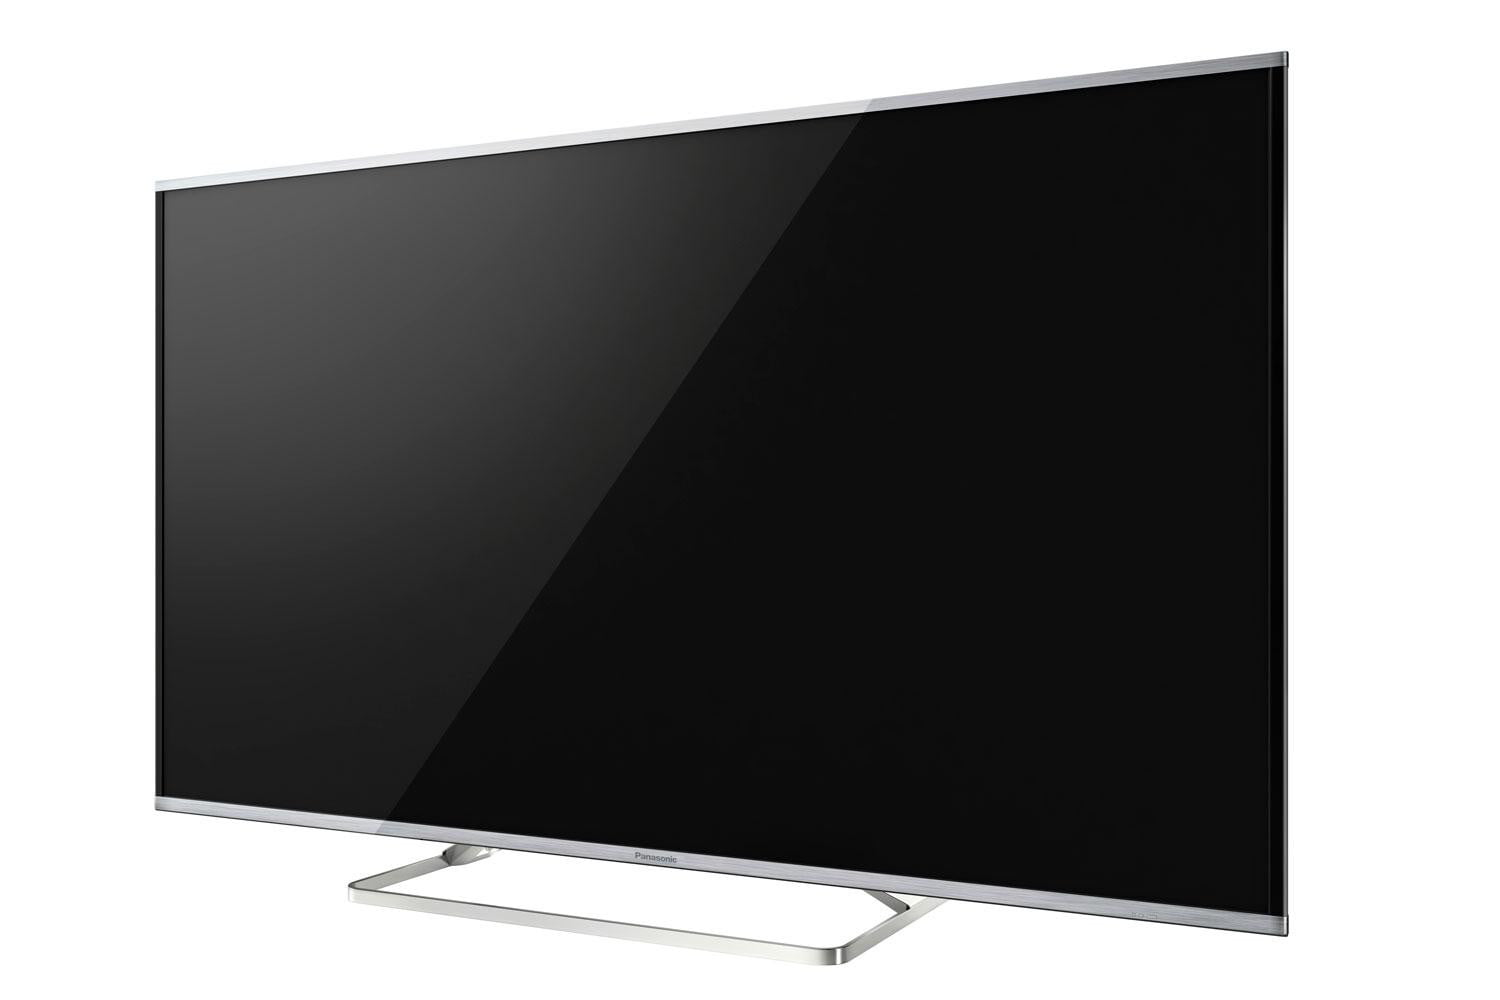 panasonic 39 s 85 inch tv is just the icing on its new 4k uhd cake digital trends